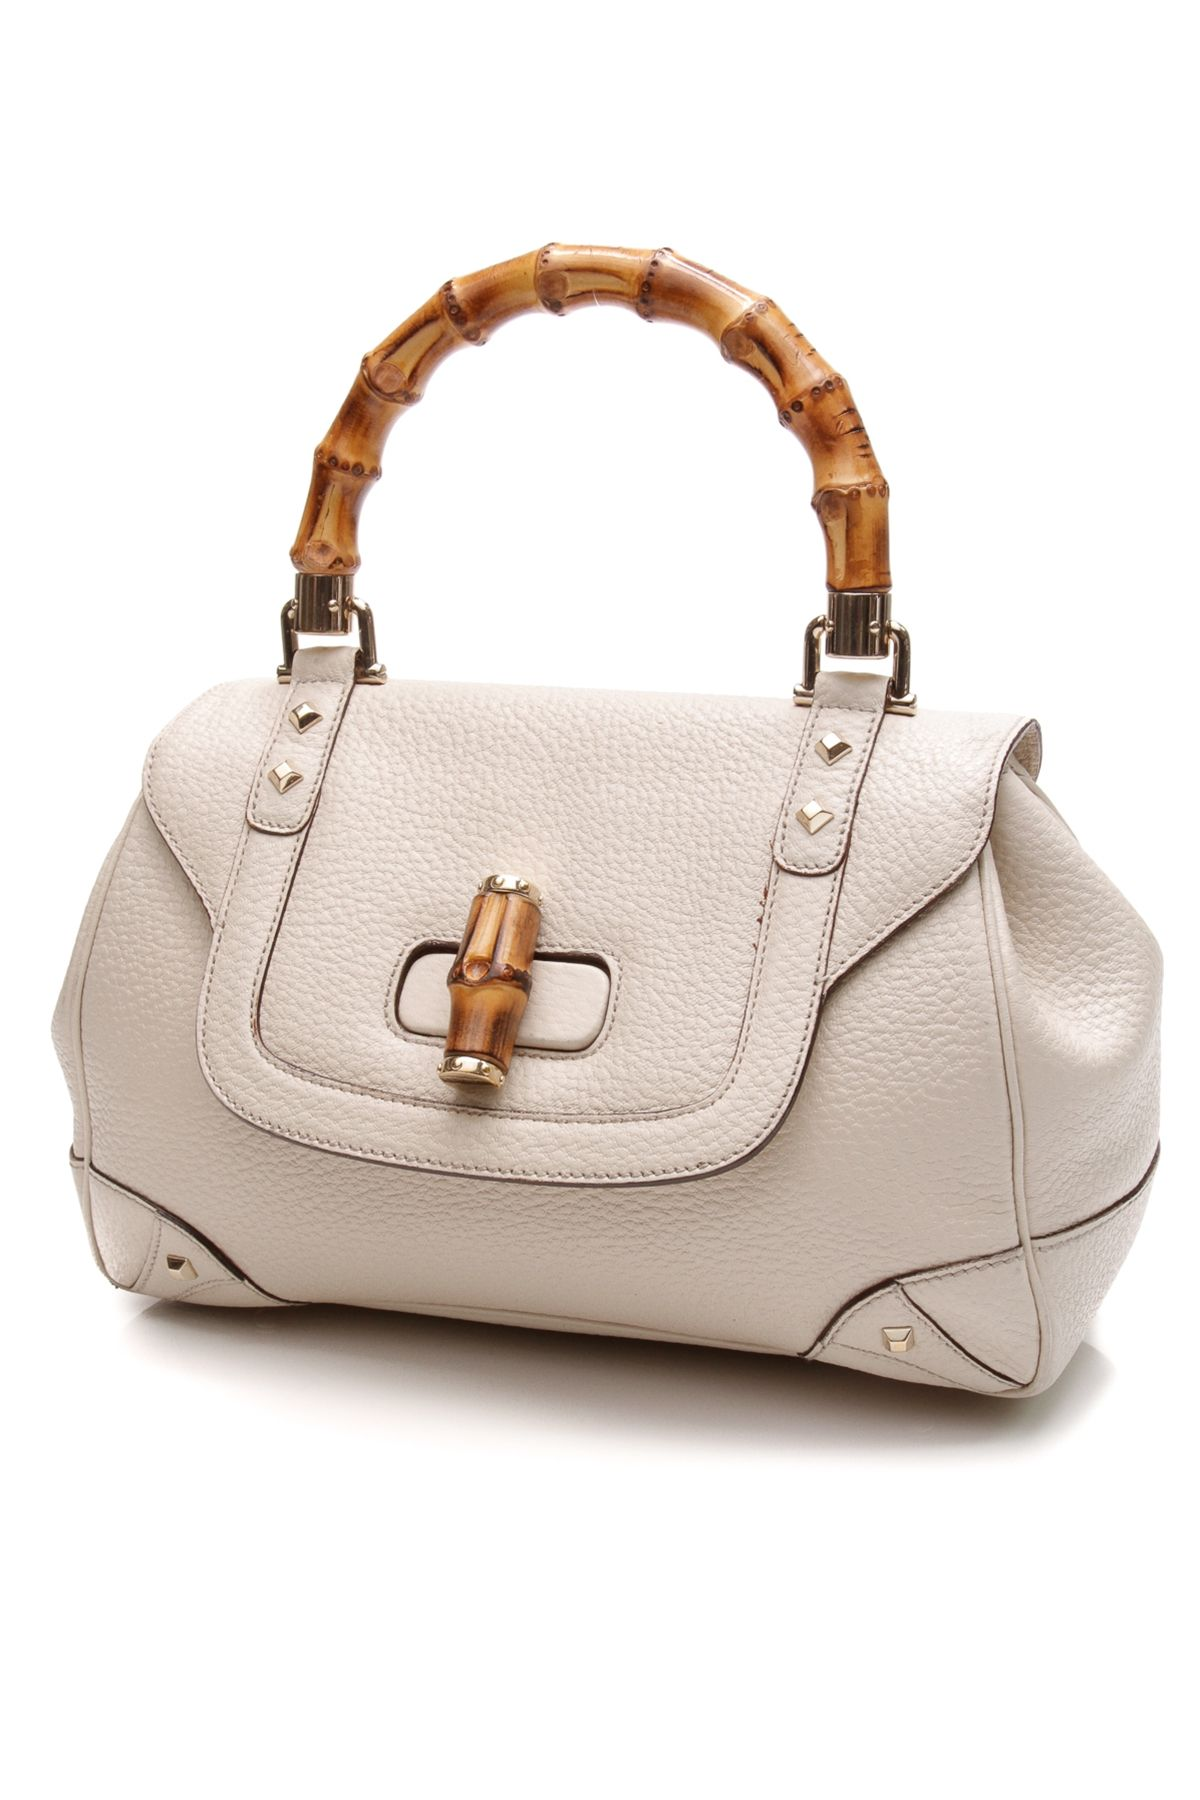 Gucci Bamboo Is So Timeless And Has A Major Cult Following